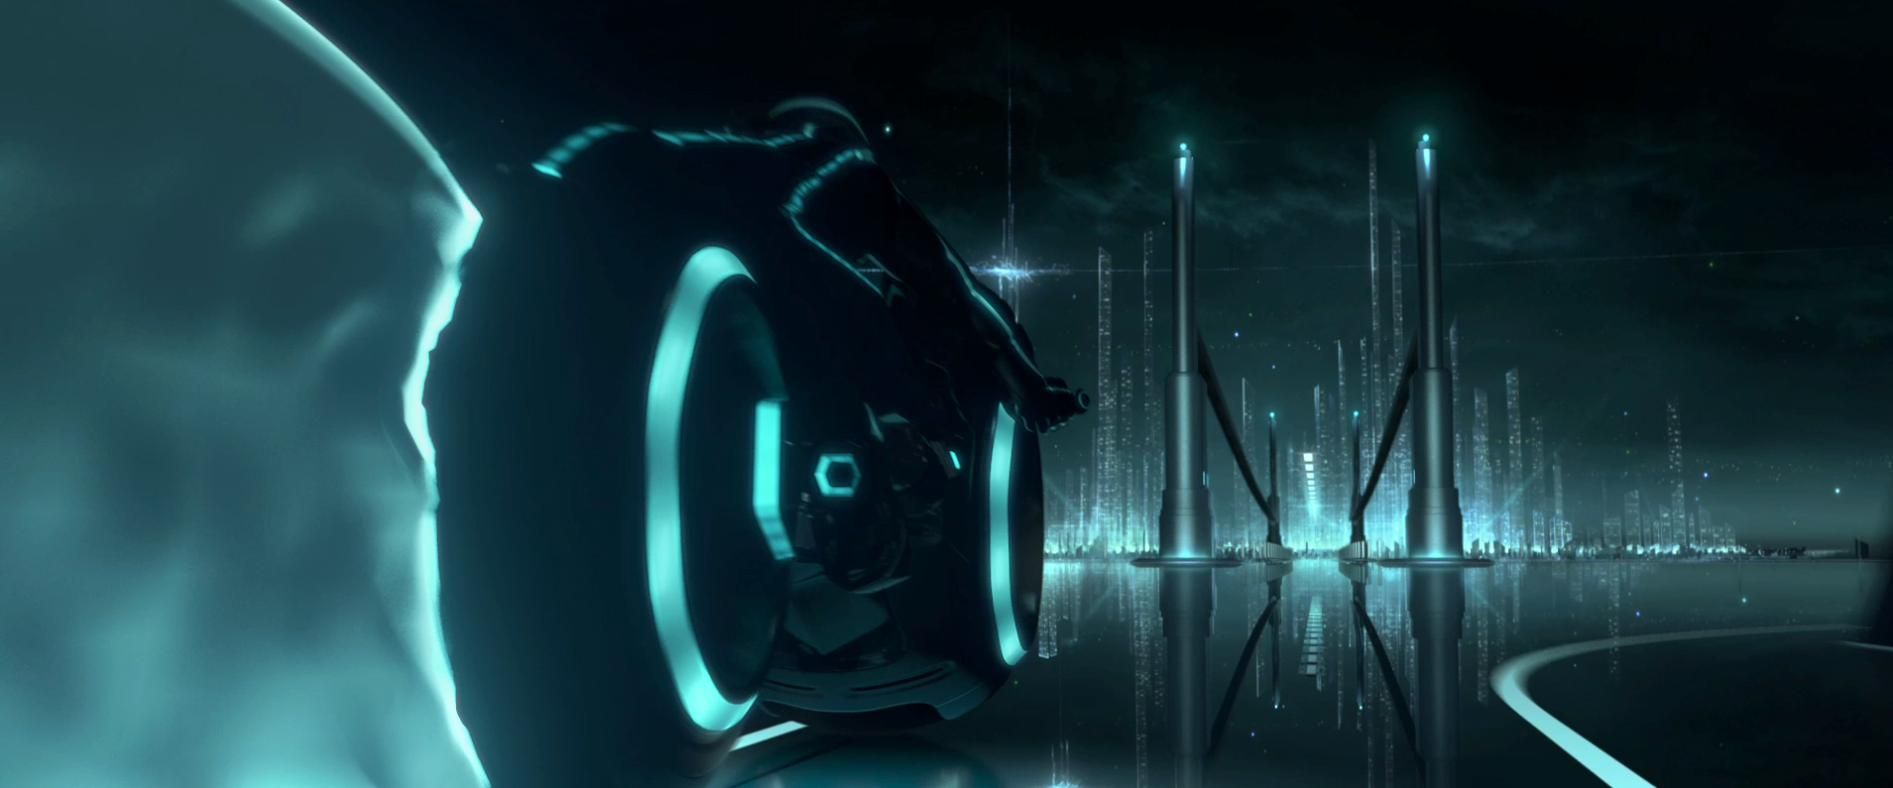 Tron Legacy Hd Wallpapers Backgrounds Wallpaper 1280 720 Tron Wallpapers 37 Wallpapers Adorable Wallpapers Tron Legacy Tron Tron Light Cycle